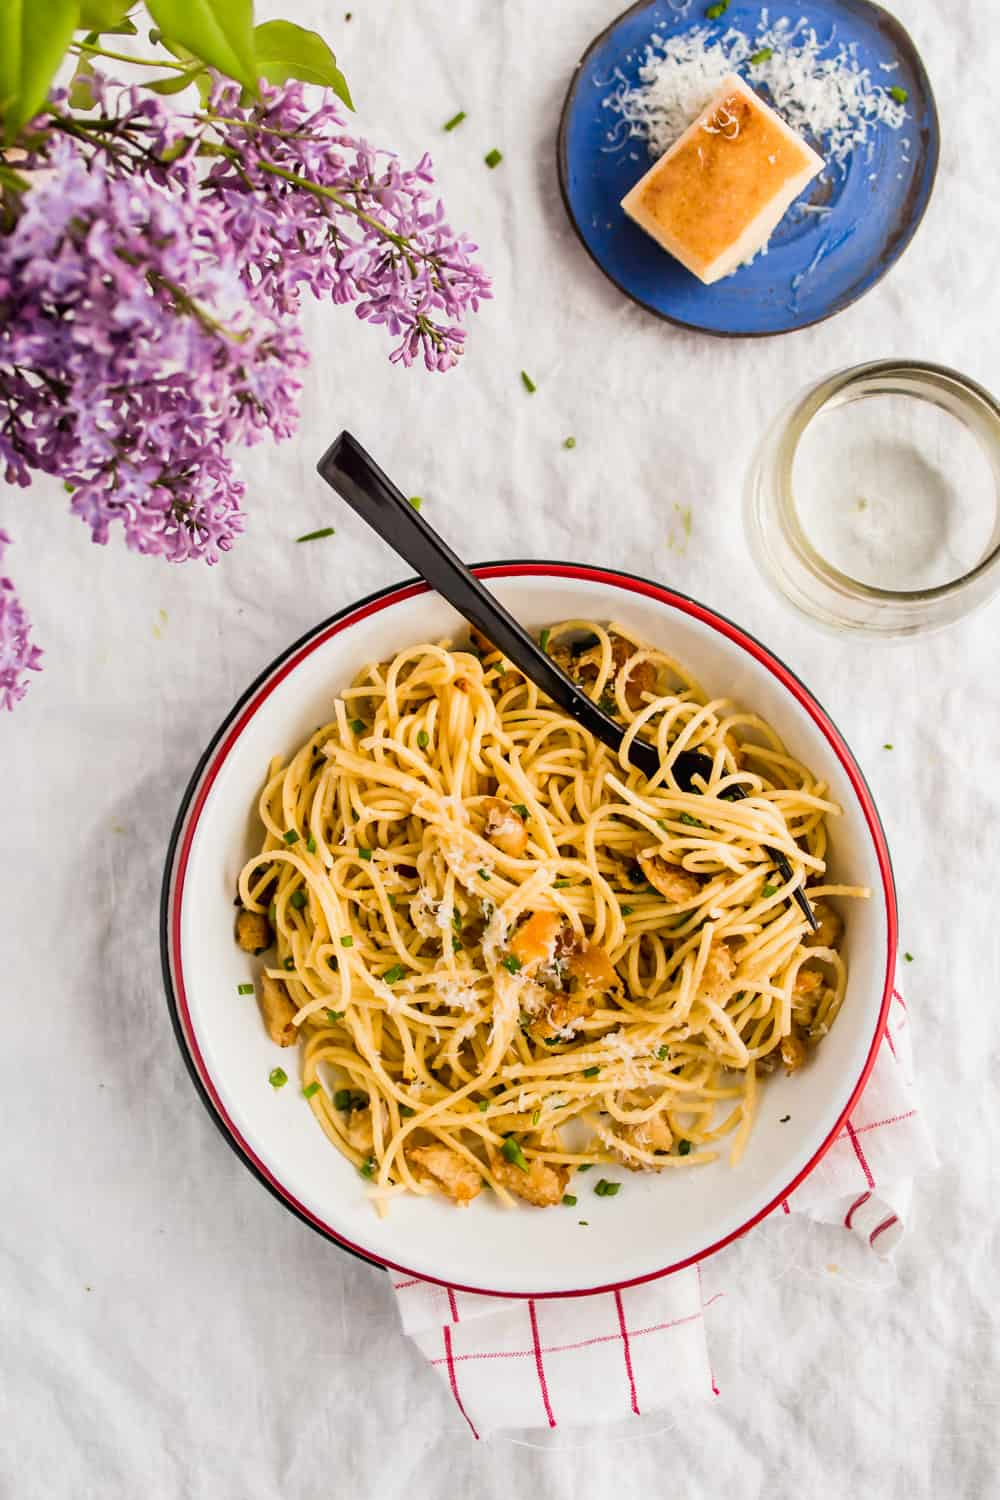 Spaghetti With Garlic Herb Breadcrumbs served in a large white bowl and parmesan on the side.